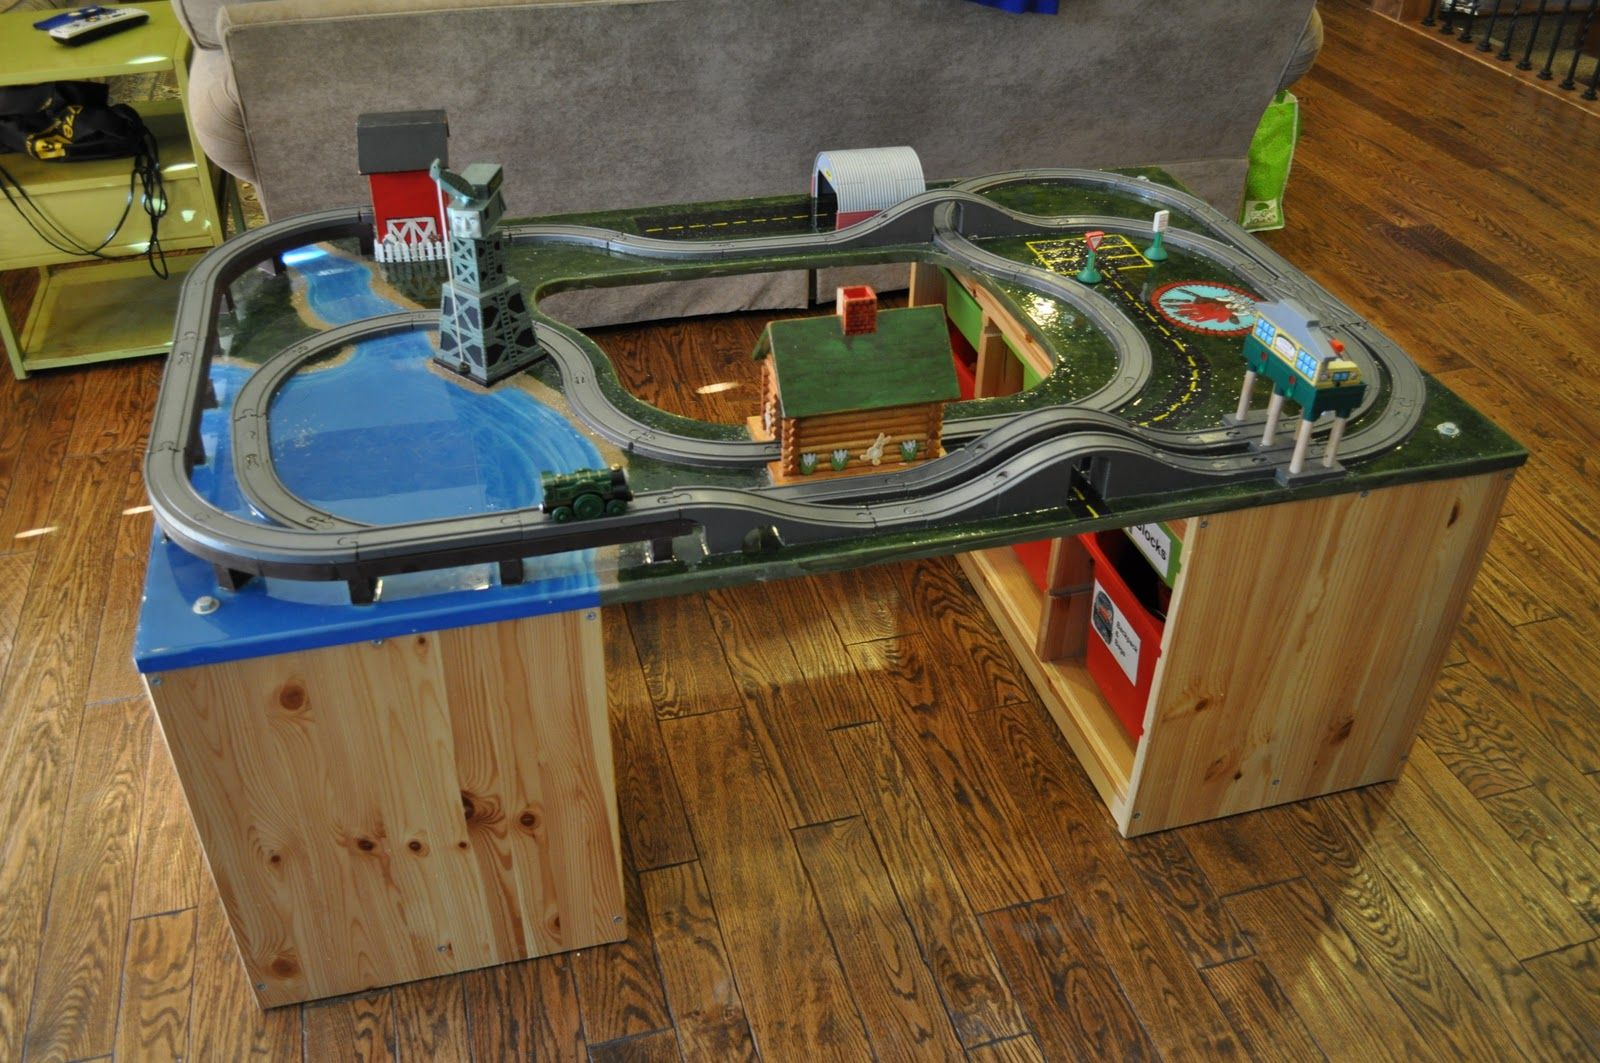 Home Made Thomas Train Table With Ikea Storage Bins As Legs...Brilliant.